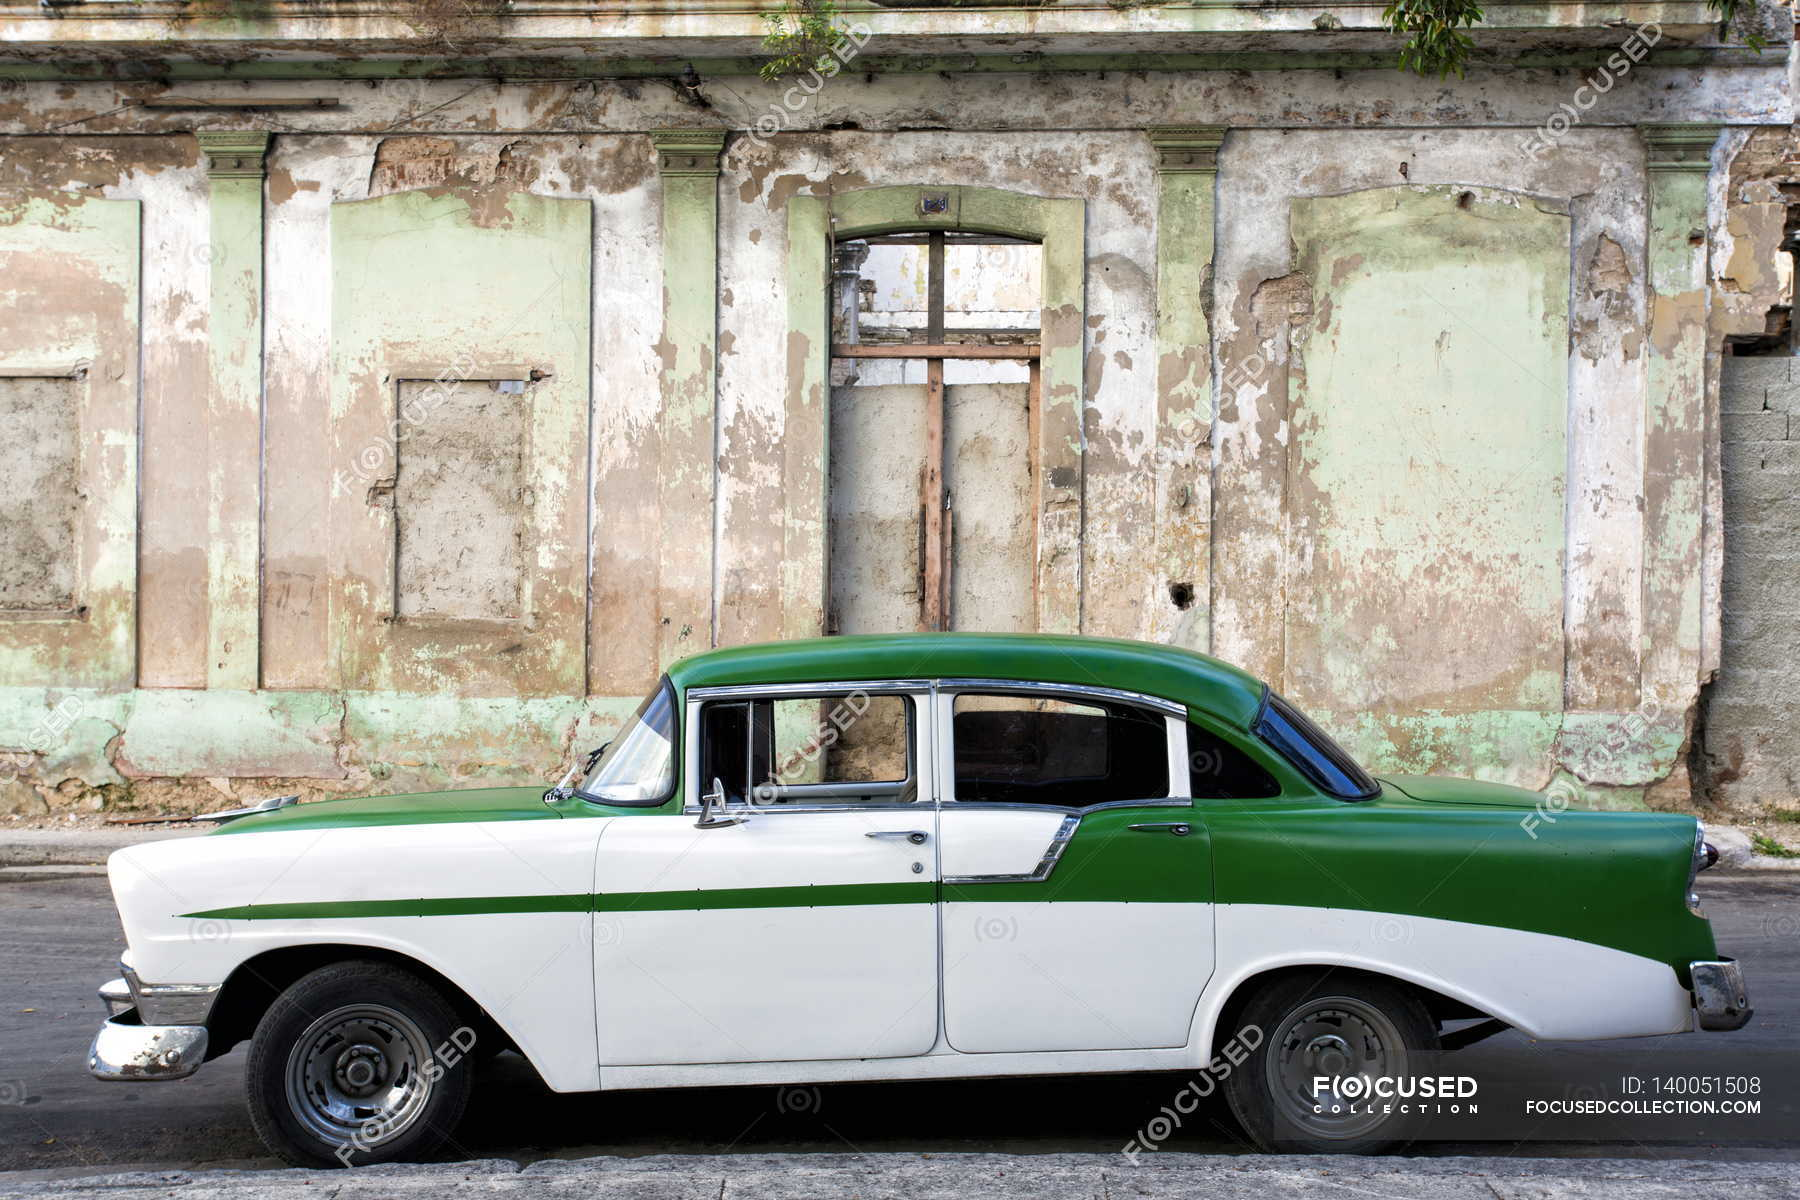 Vintage american car parked on street — Stock Photo | #140051508